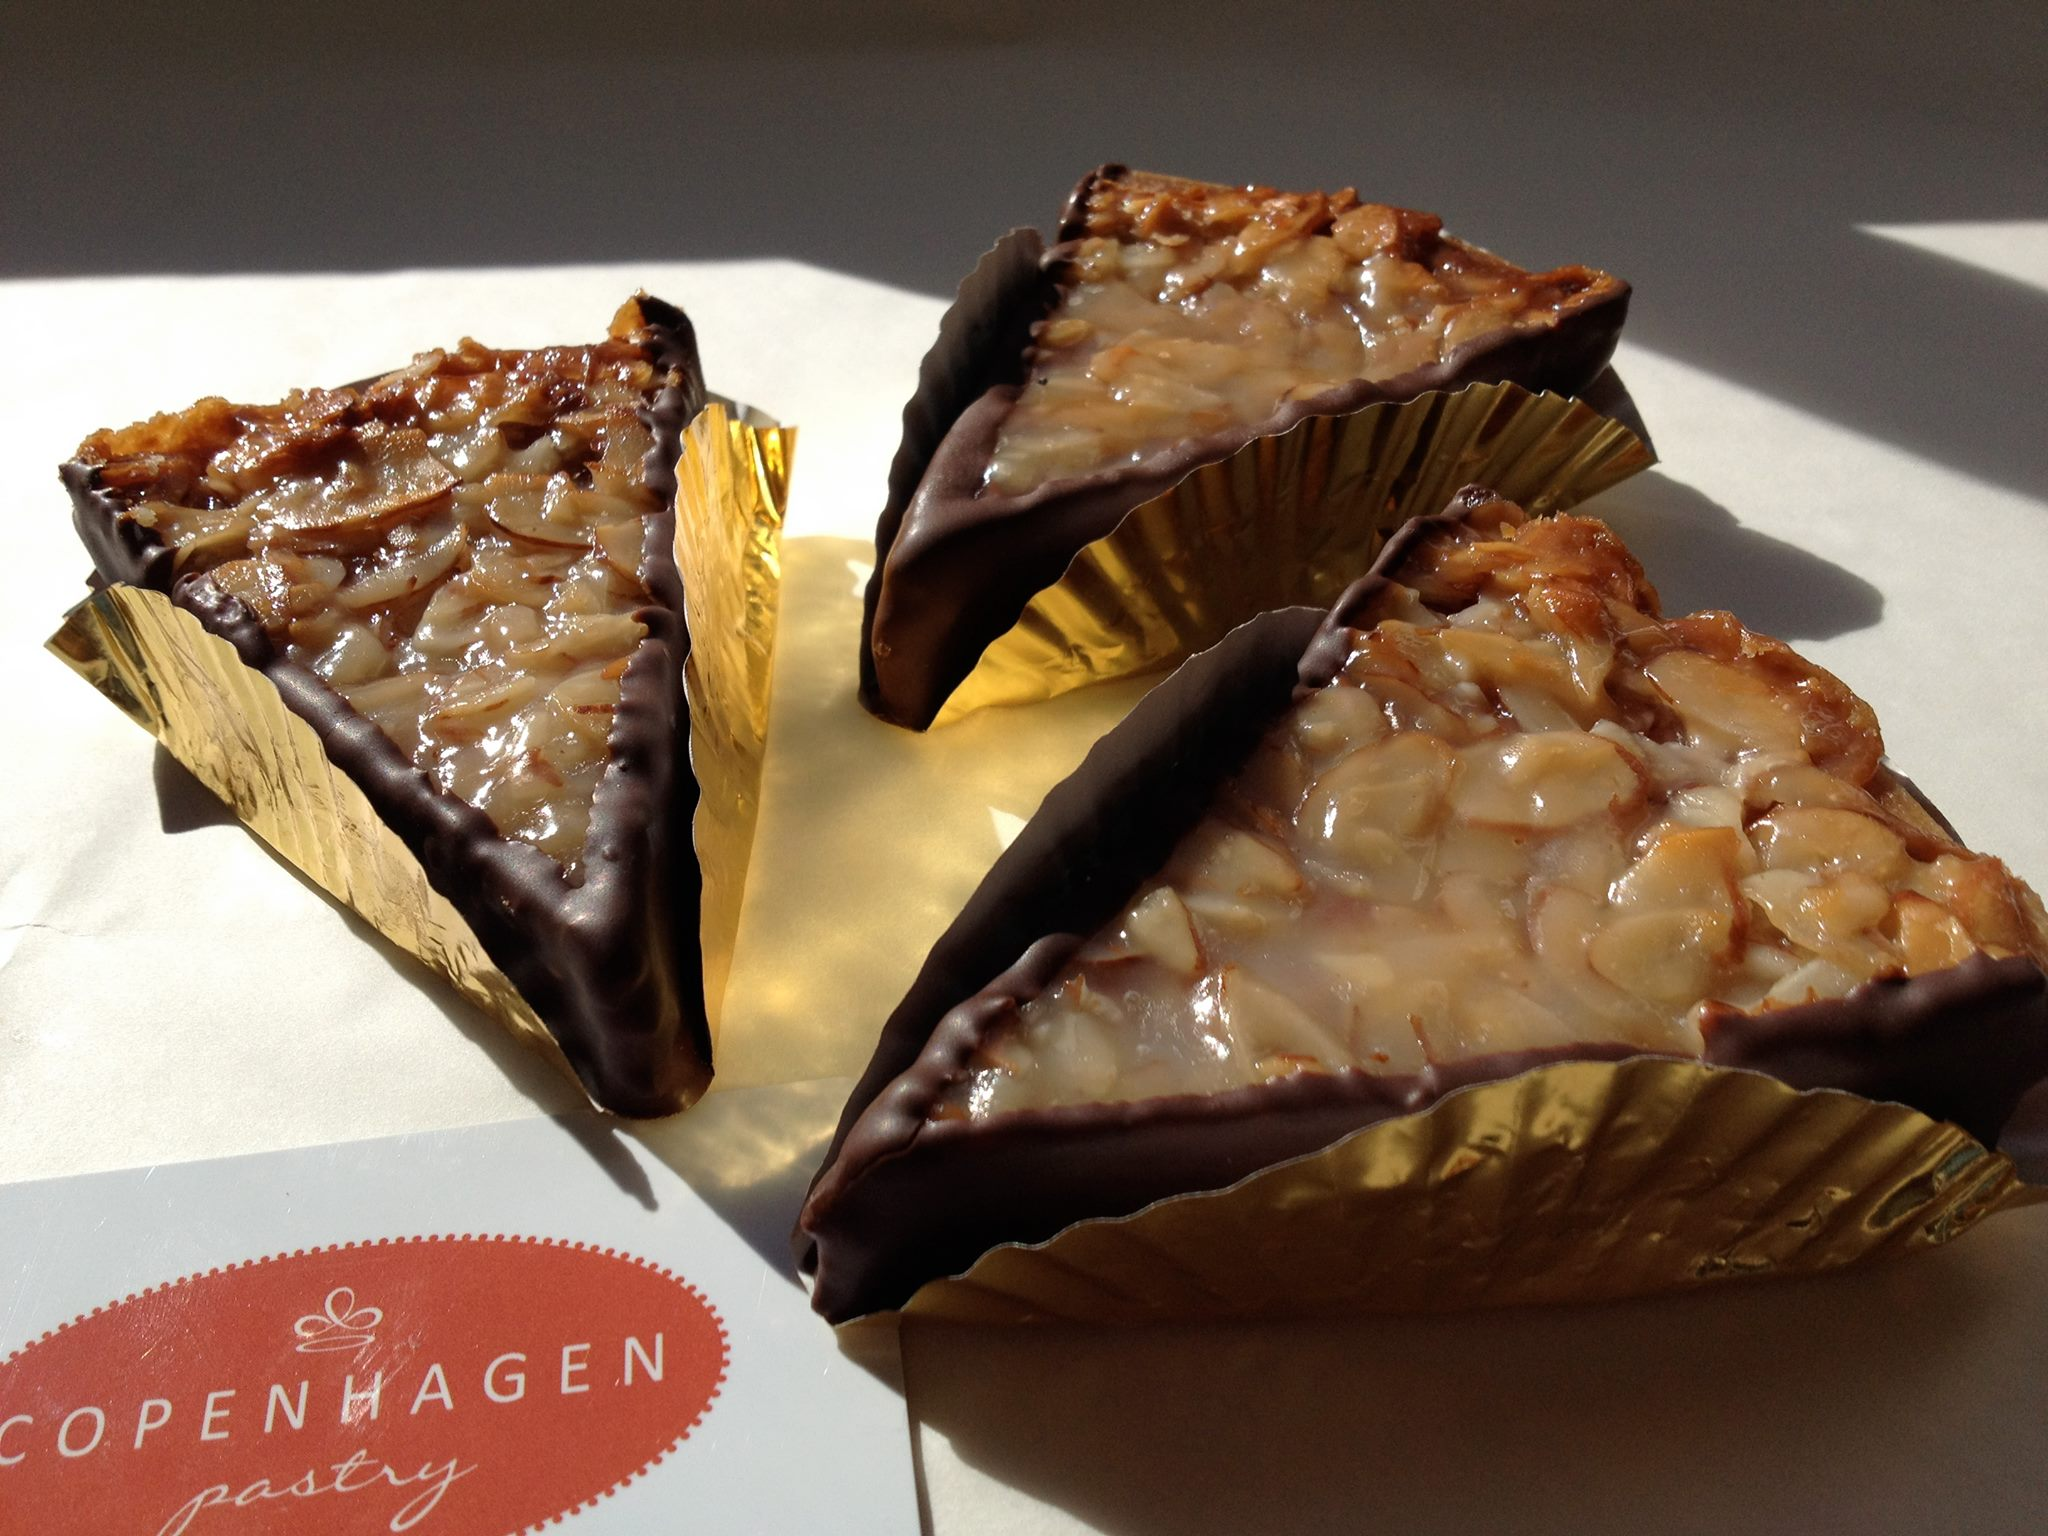 Photo: Copenhagen Pastry official Facebook page